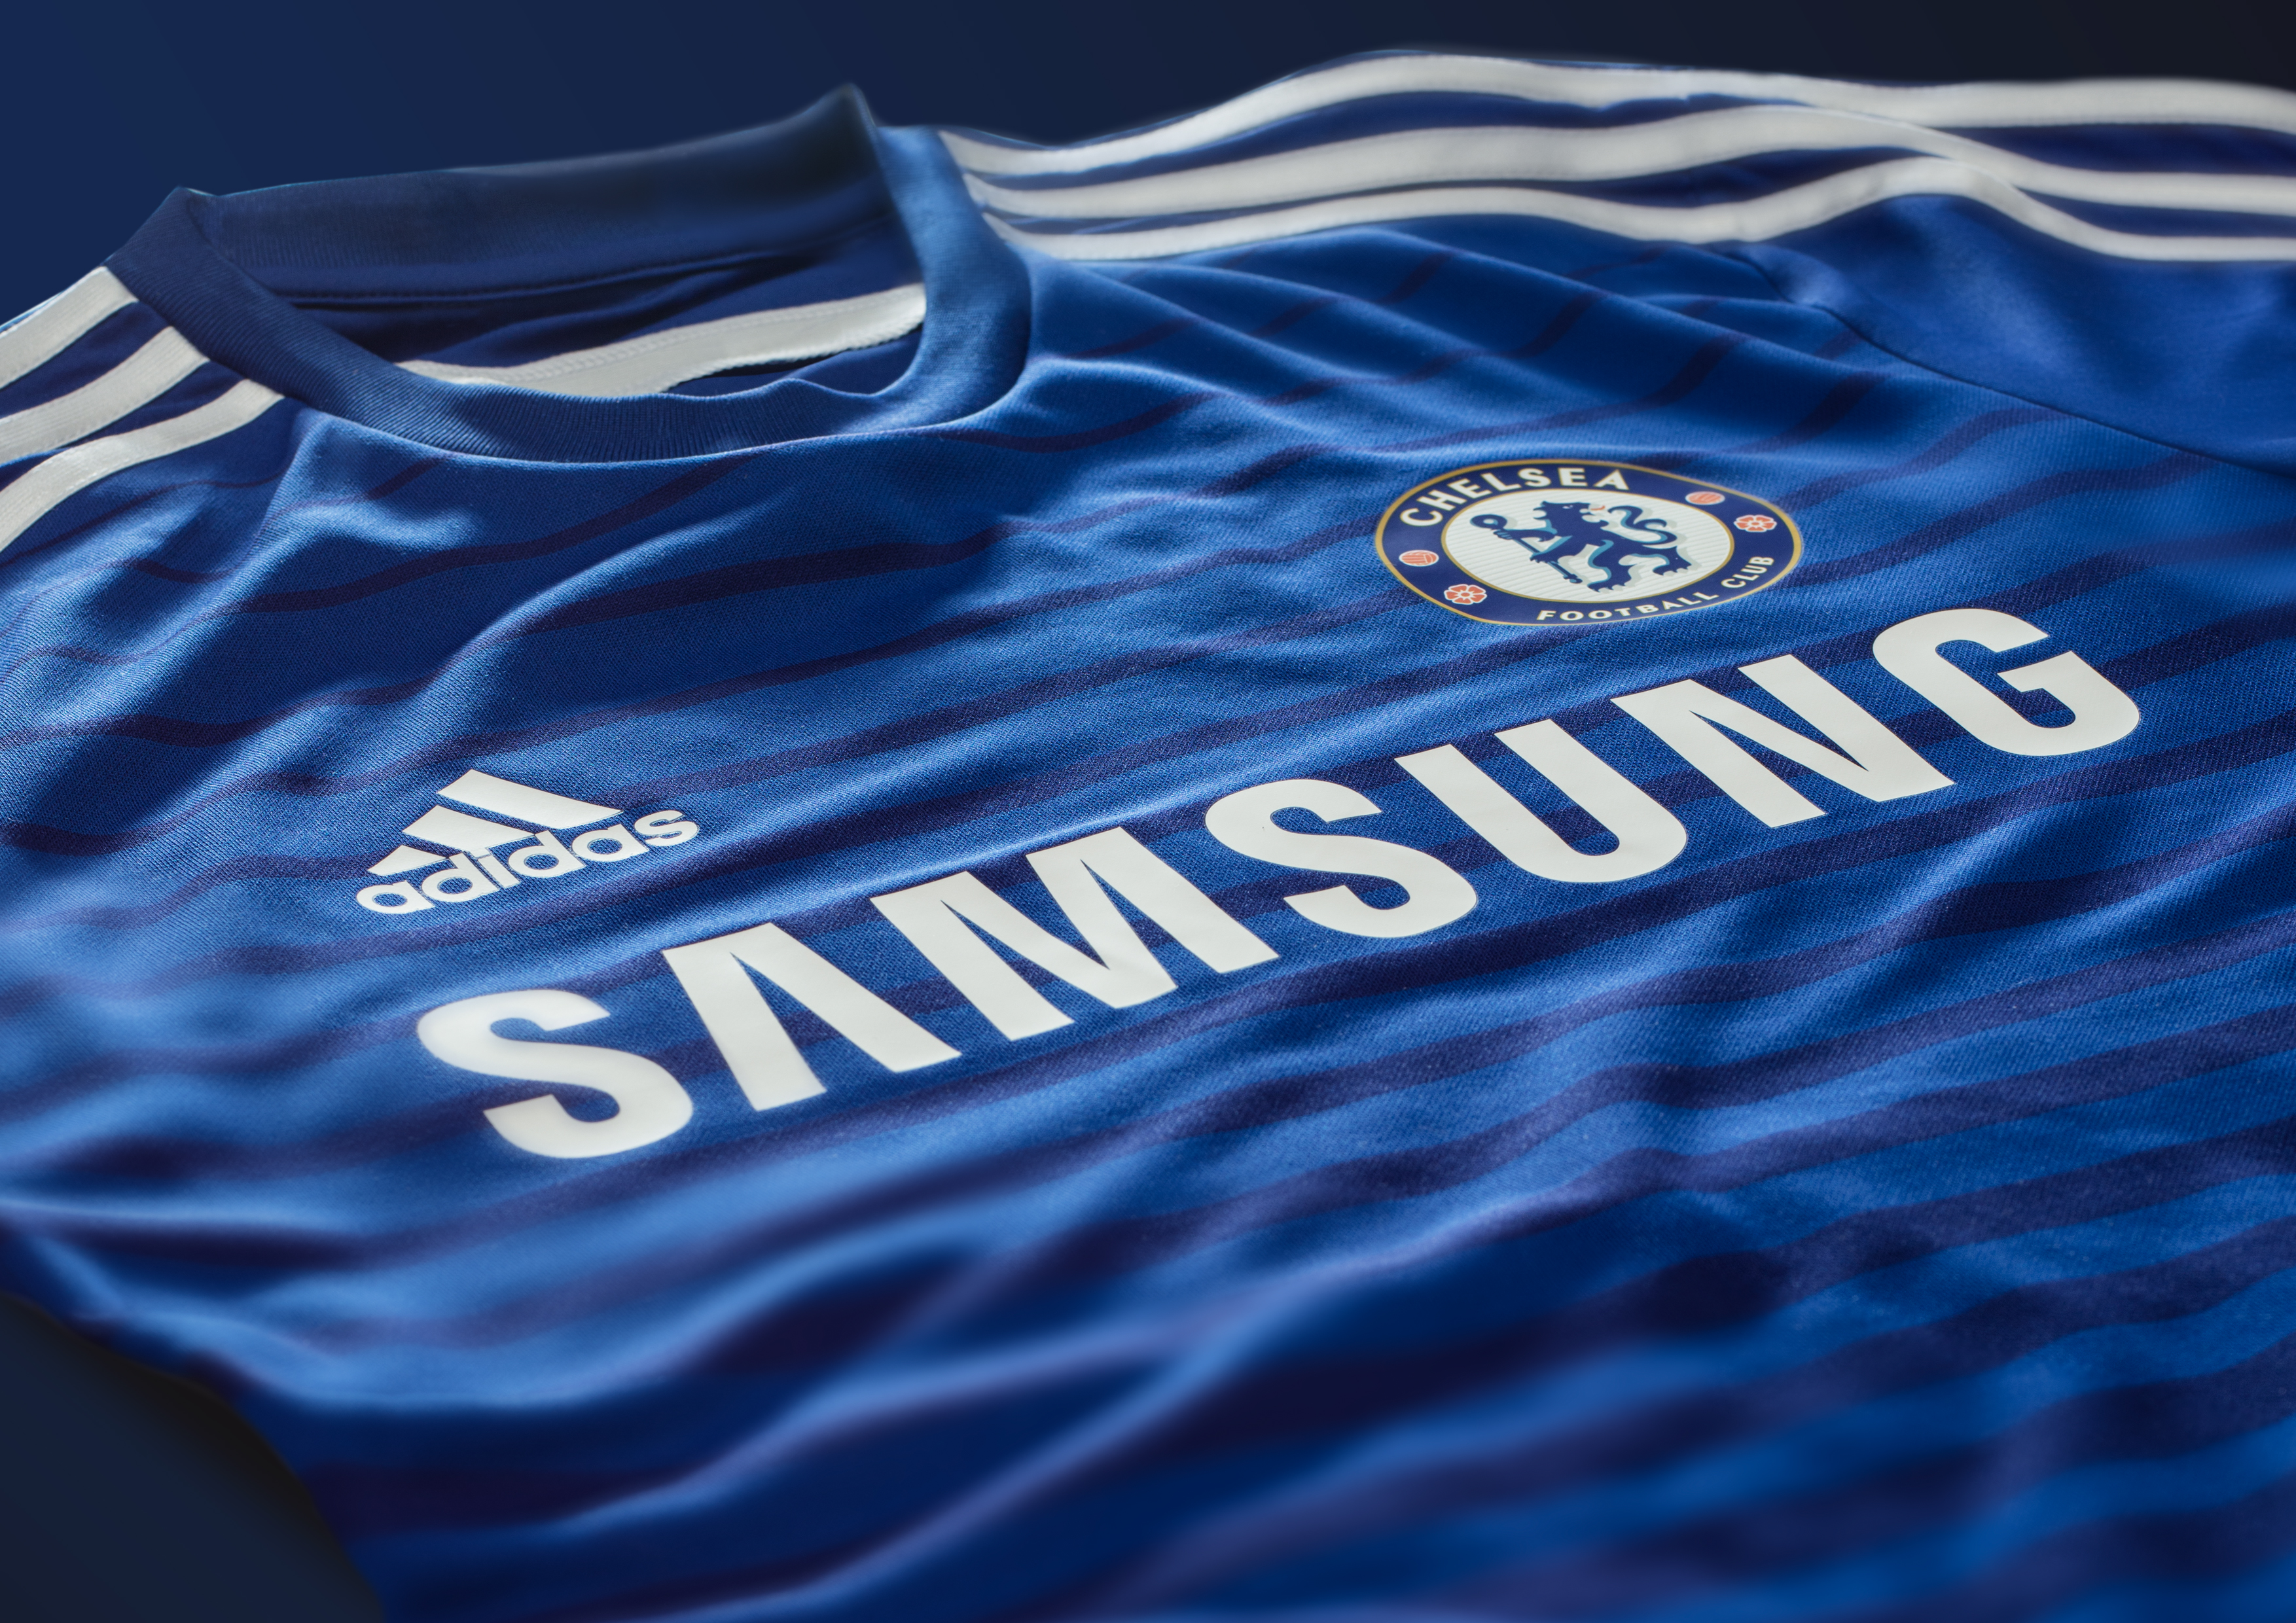 chelsea-home-shirt-top